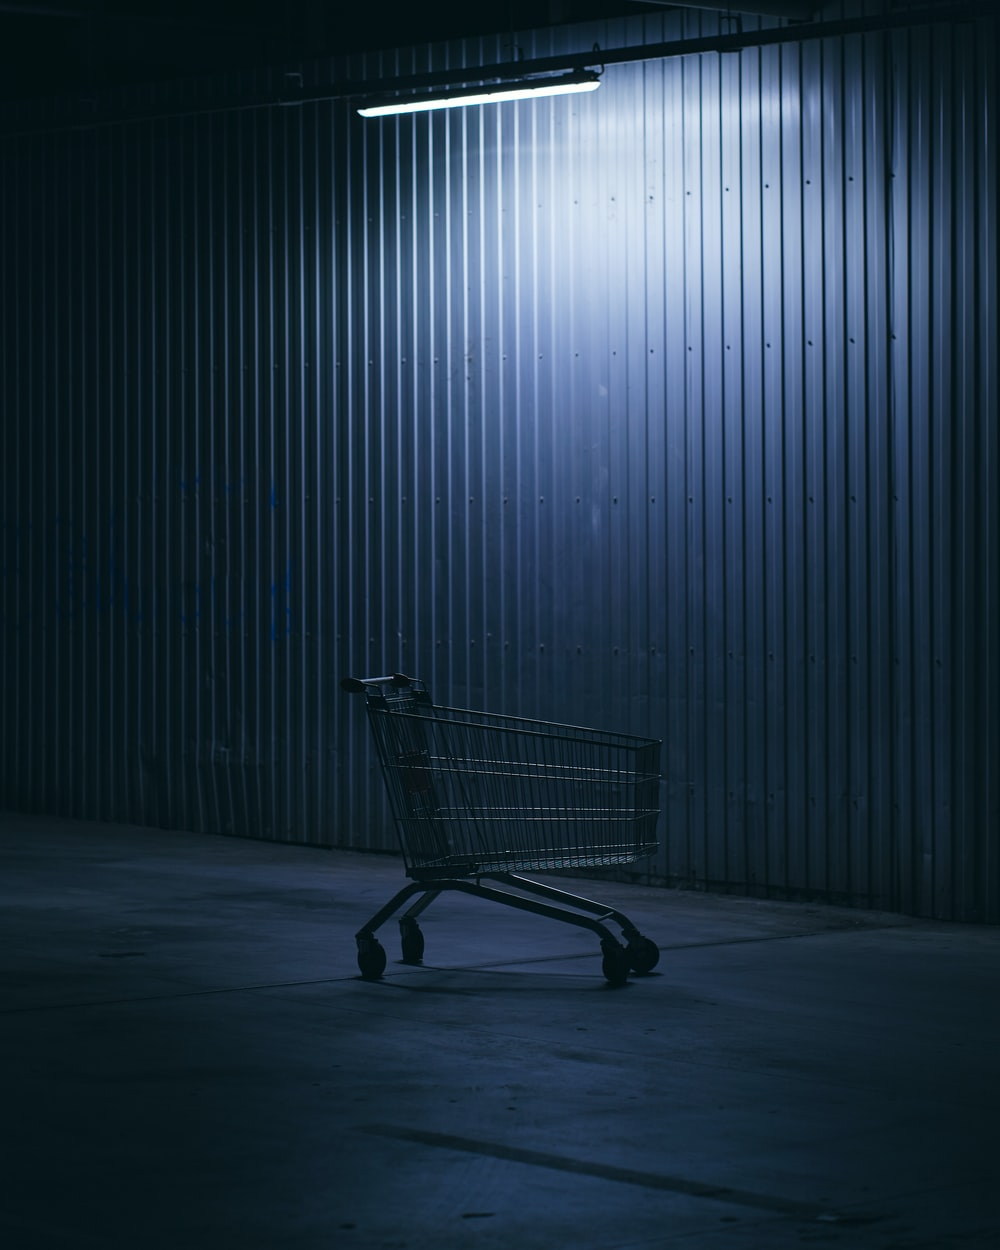 shopping cart in a room